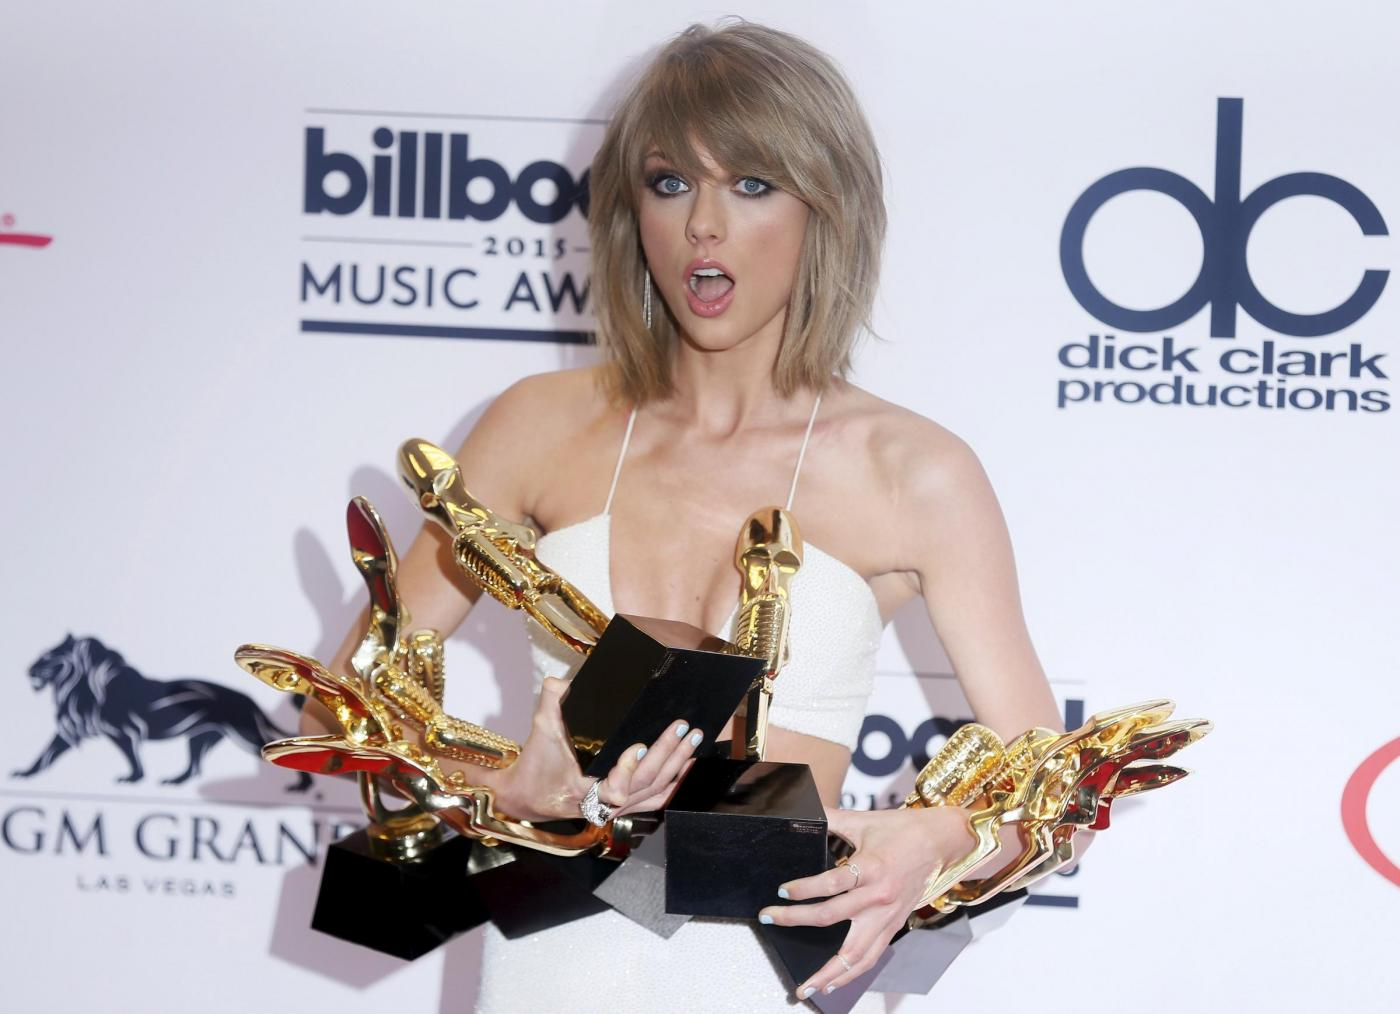 Billboard Music Awards 2015, vincitori: Taylor Swift ne porta a casa 8